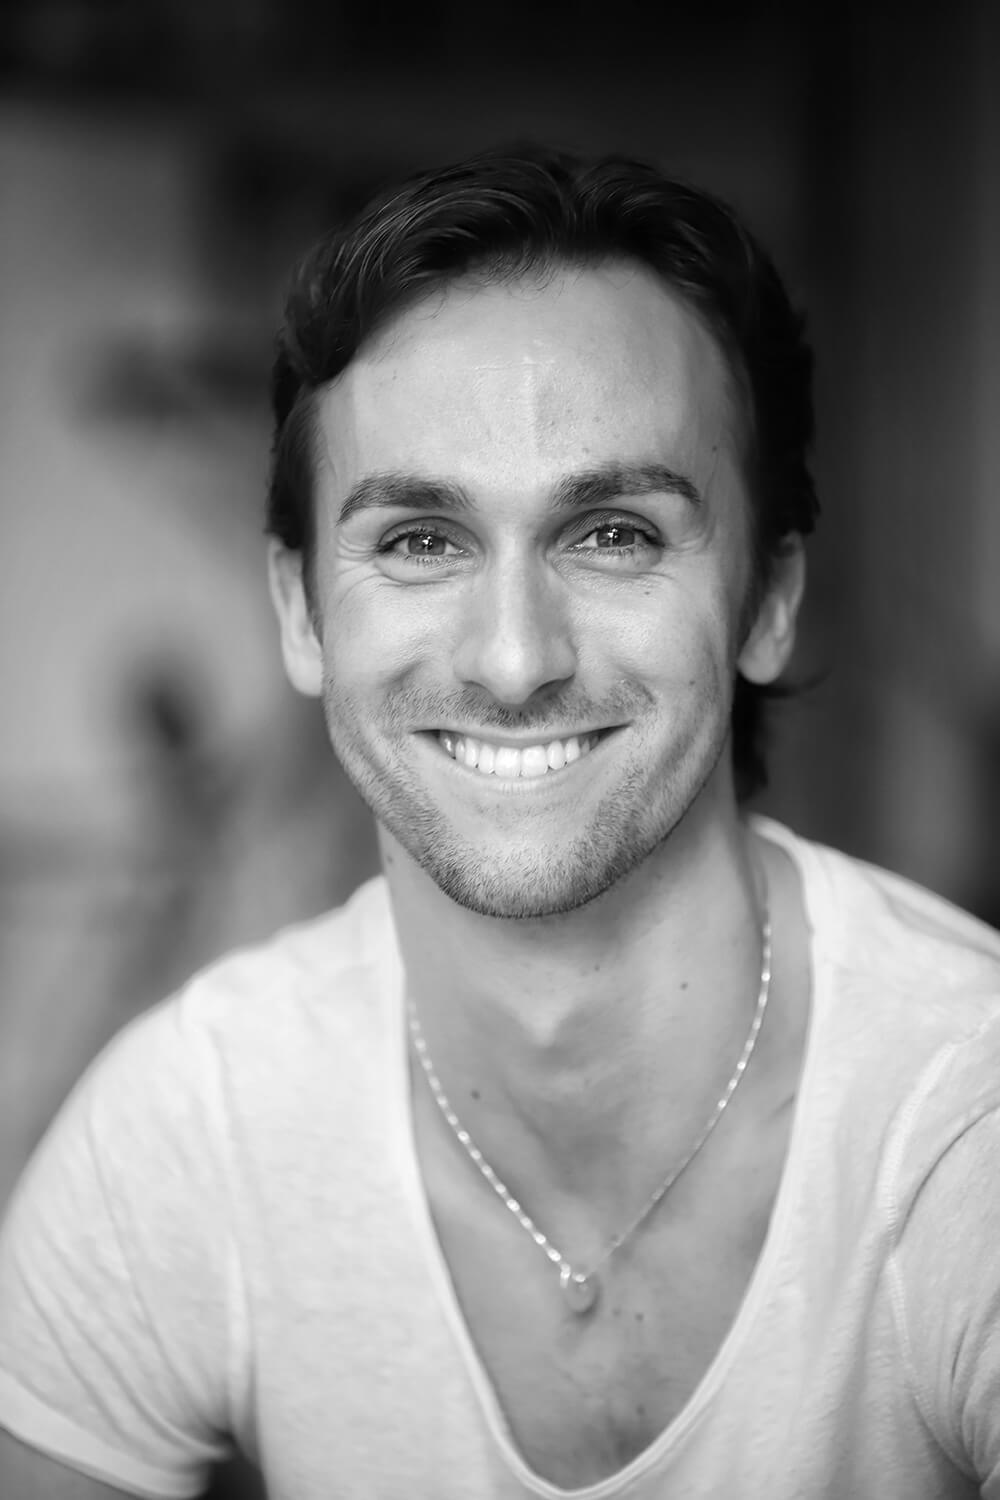 Head and shoulders photo of ballet dancer Medhi Angot